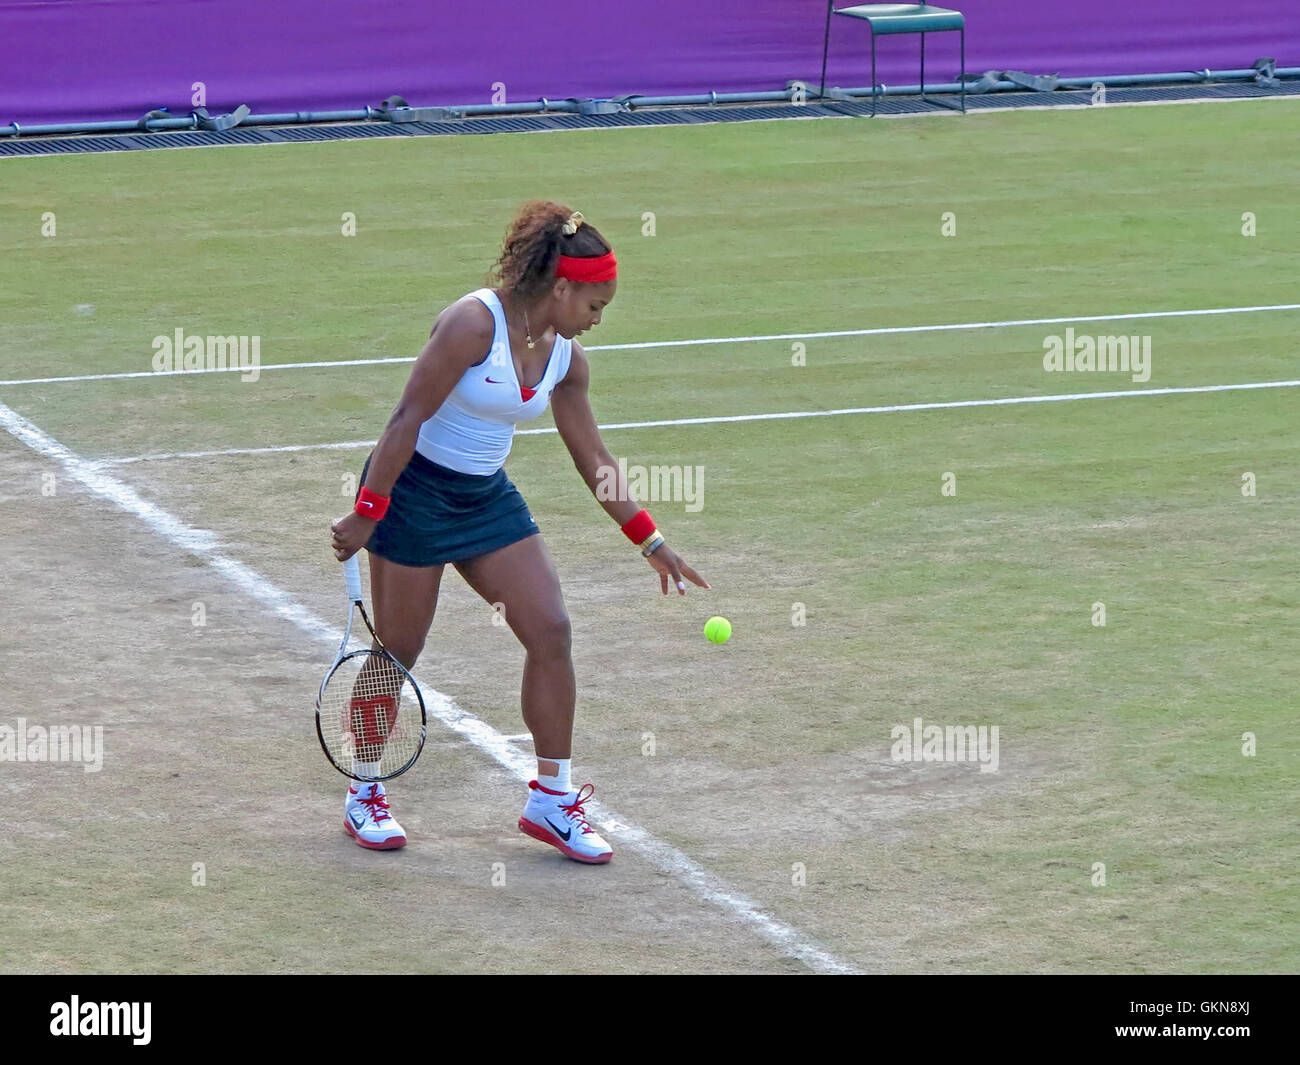 Wimbledon, England. August 2nd, 2012. Serena Williams during one of her doubles matches at the summer Olympics in - Stock Image